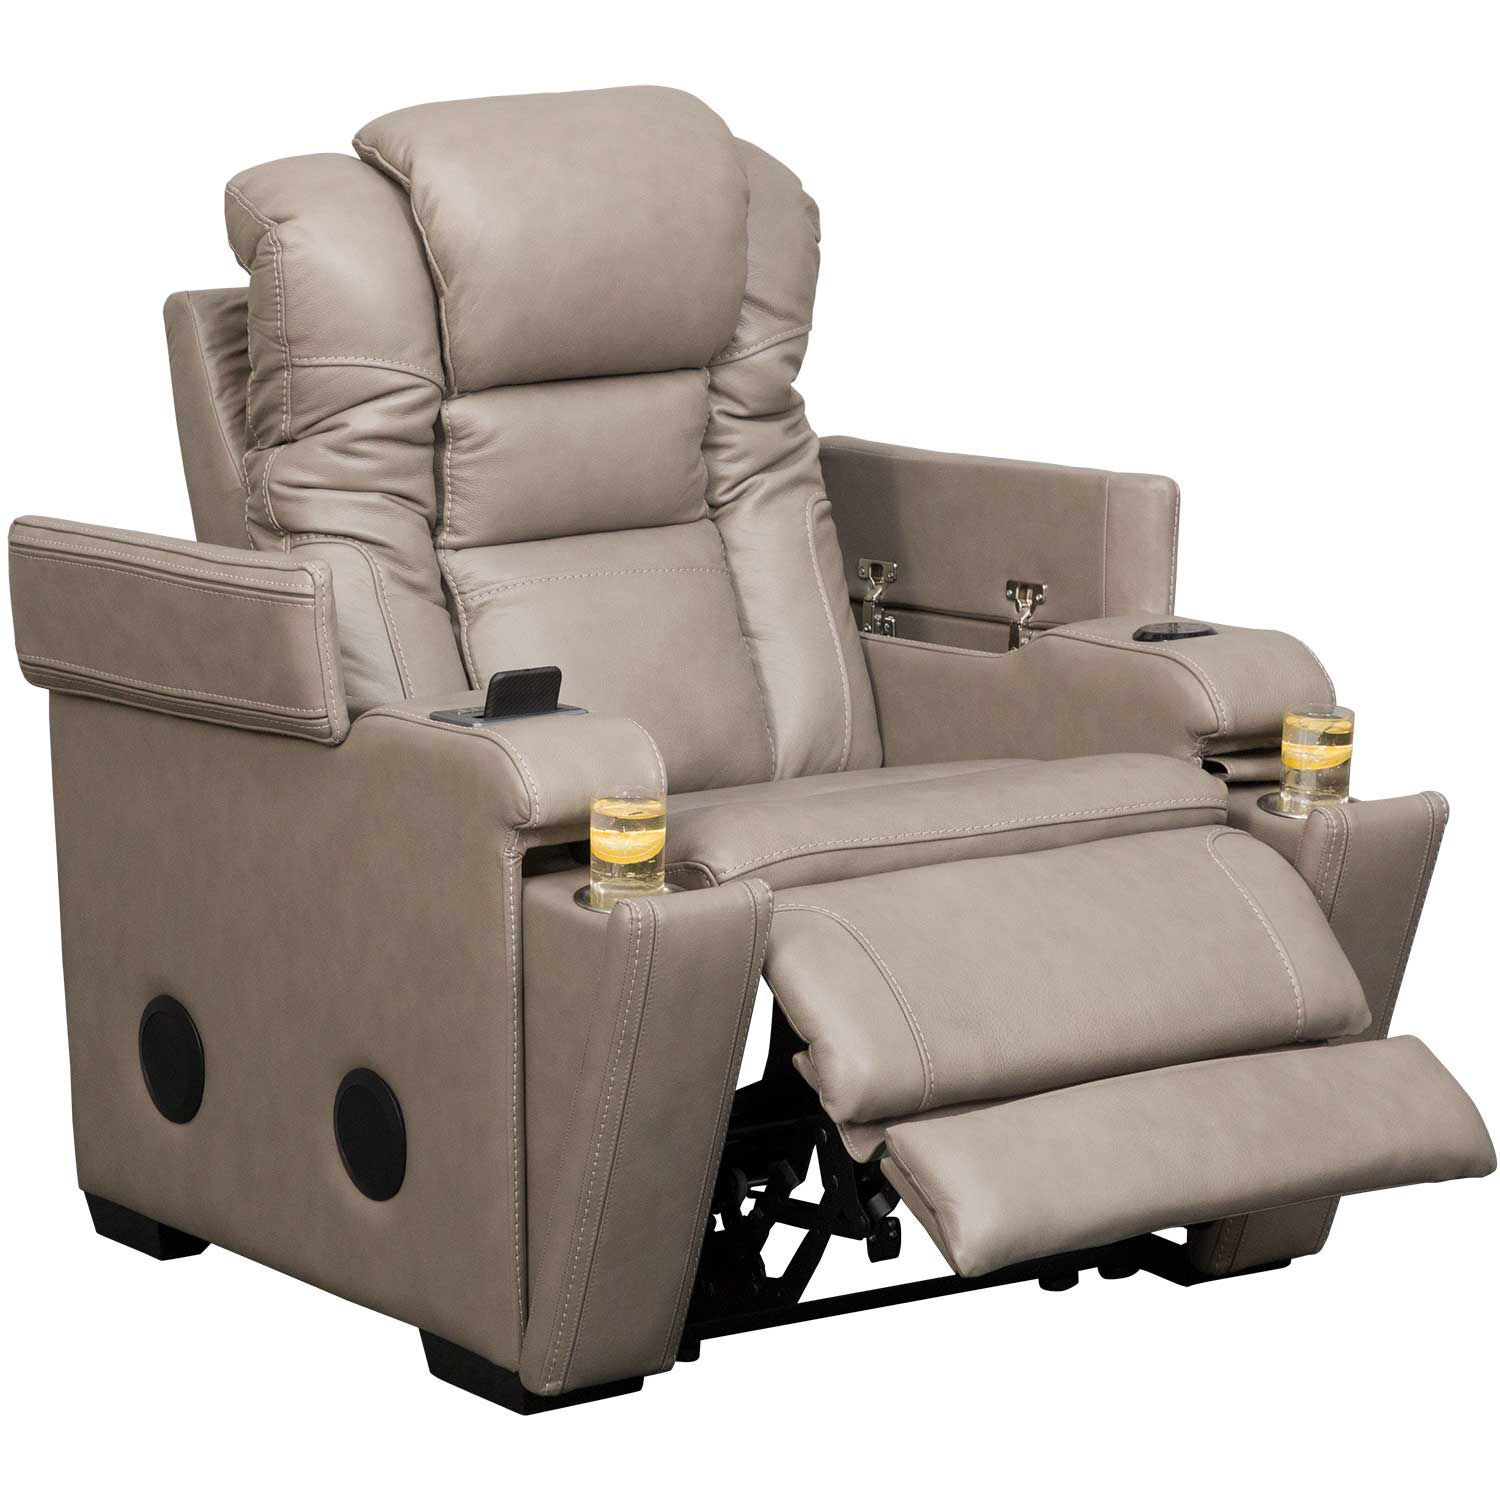 Picture of Boerna Power Recliner with Adjustable Headrest